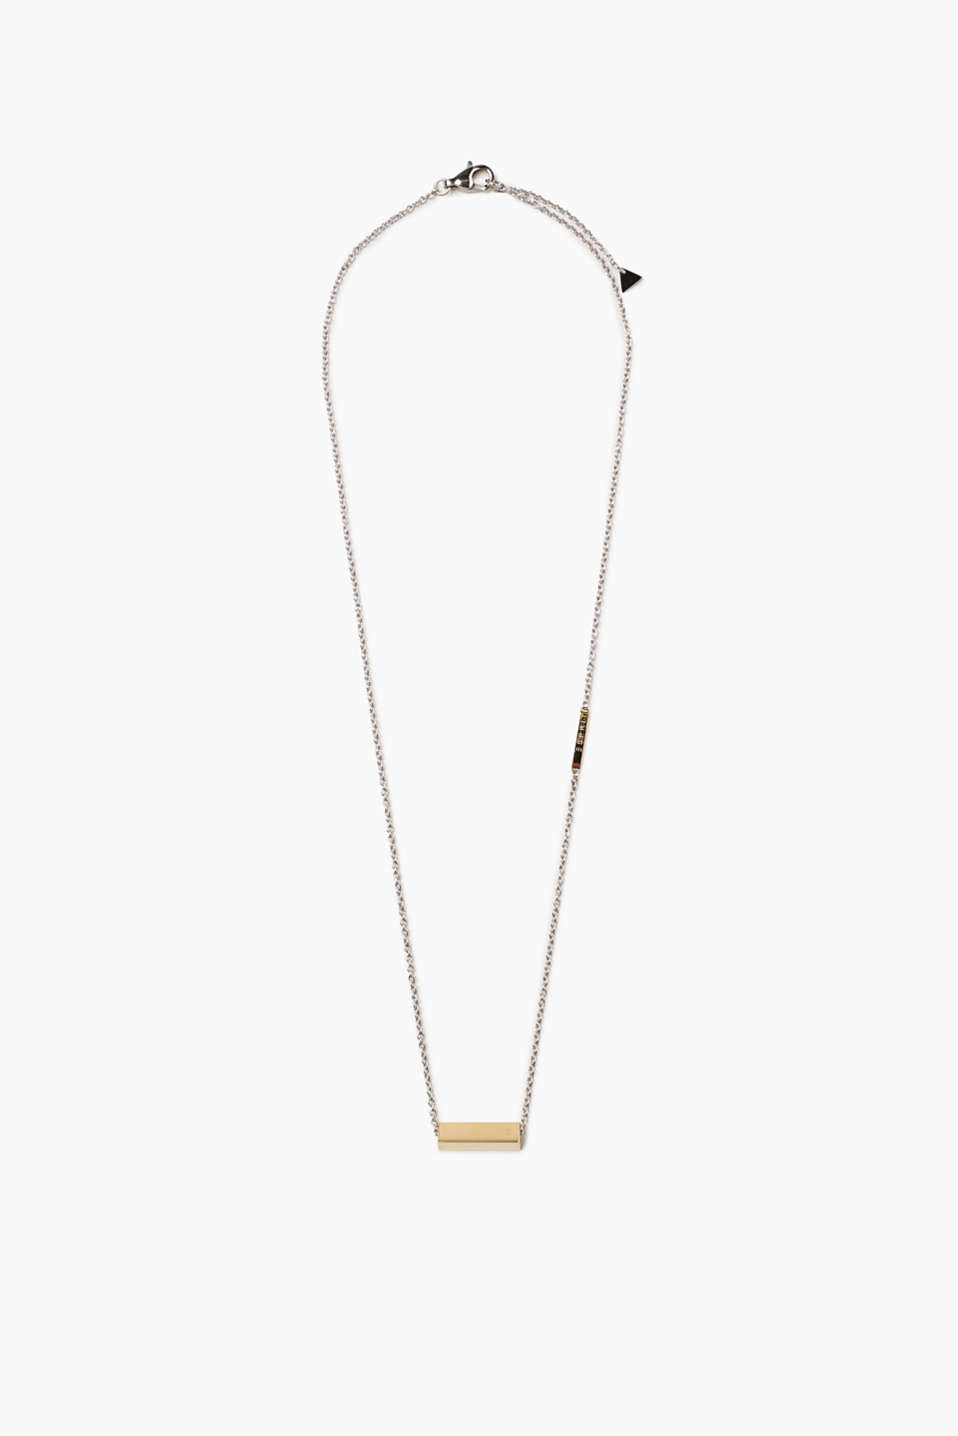 Fine stainless steel necklace with pendant